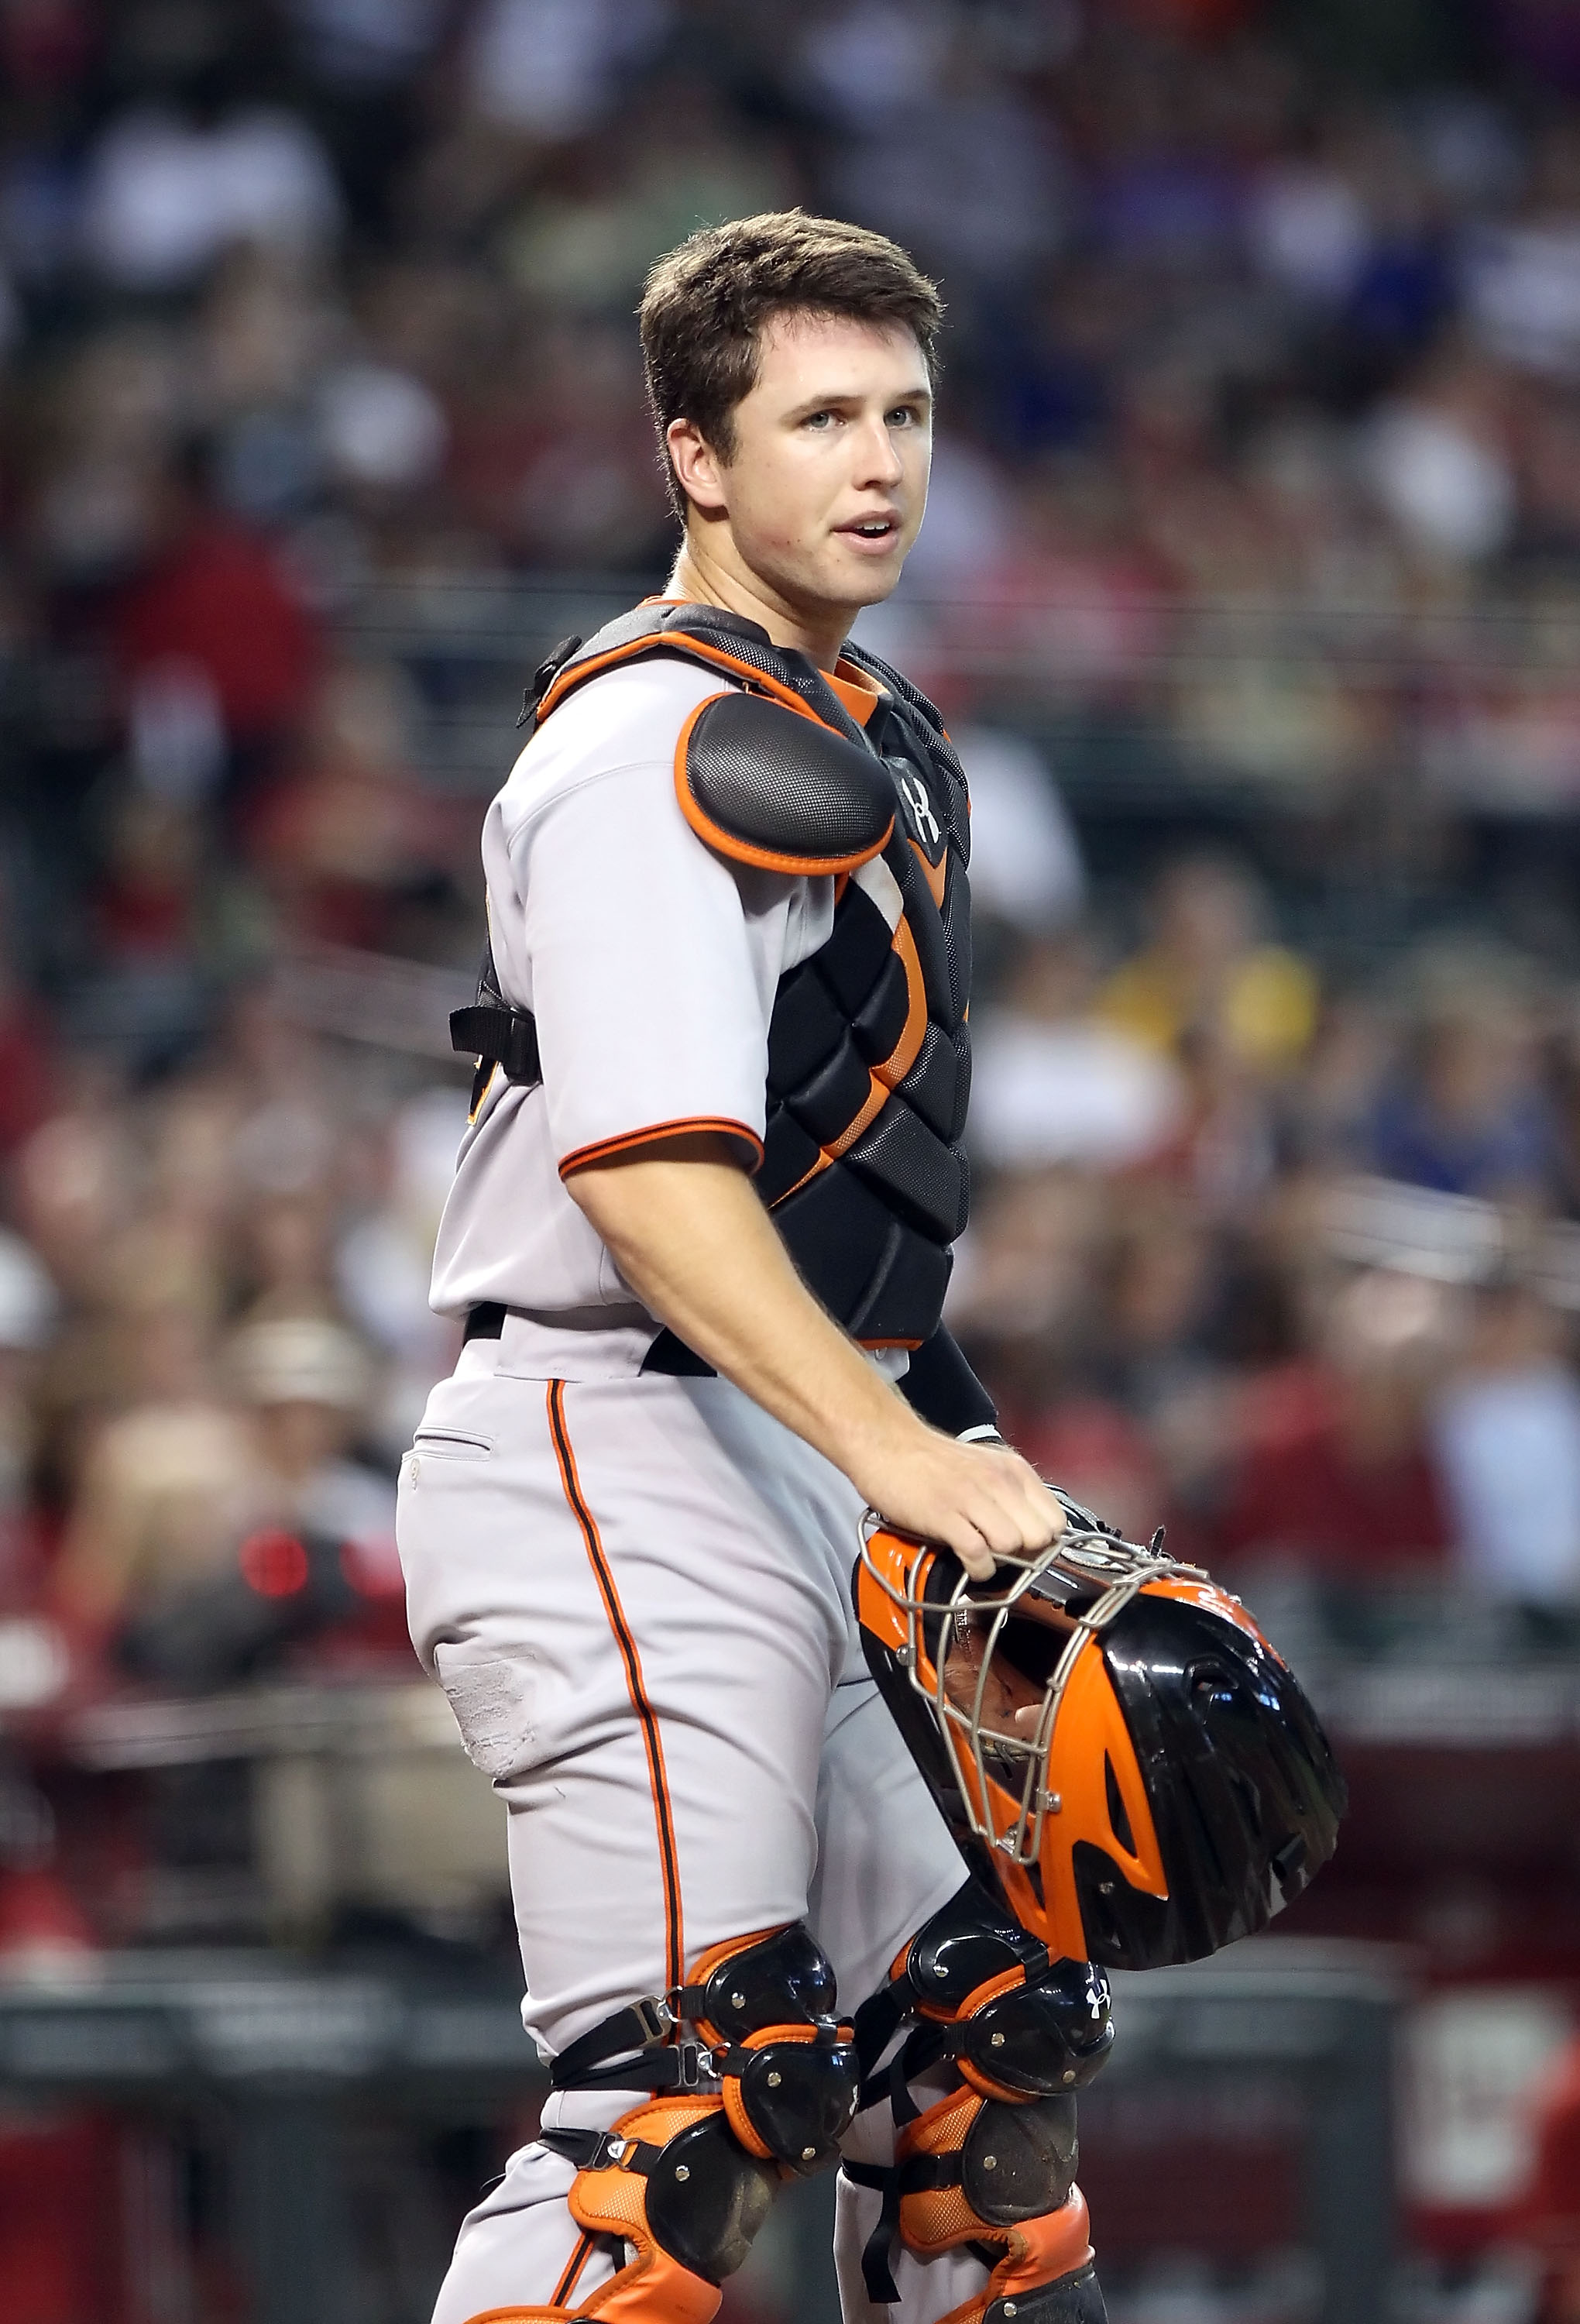 PHOENIX - SEPTEMBER 06:  Catcher Buster Posey #28 of the San Francisco Giants in action during the Major League Baseball game against the Arizona Diamondbacks at Chase Field on September 6, 2010 in Phoenix, Arizona. The Giants defeated the Diamondbacks 2-